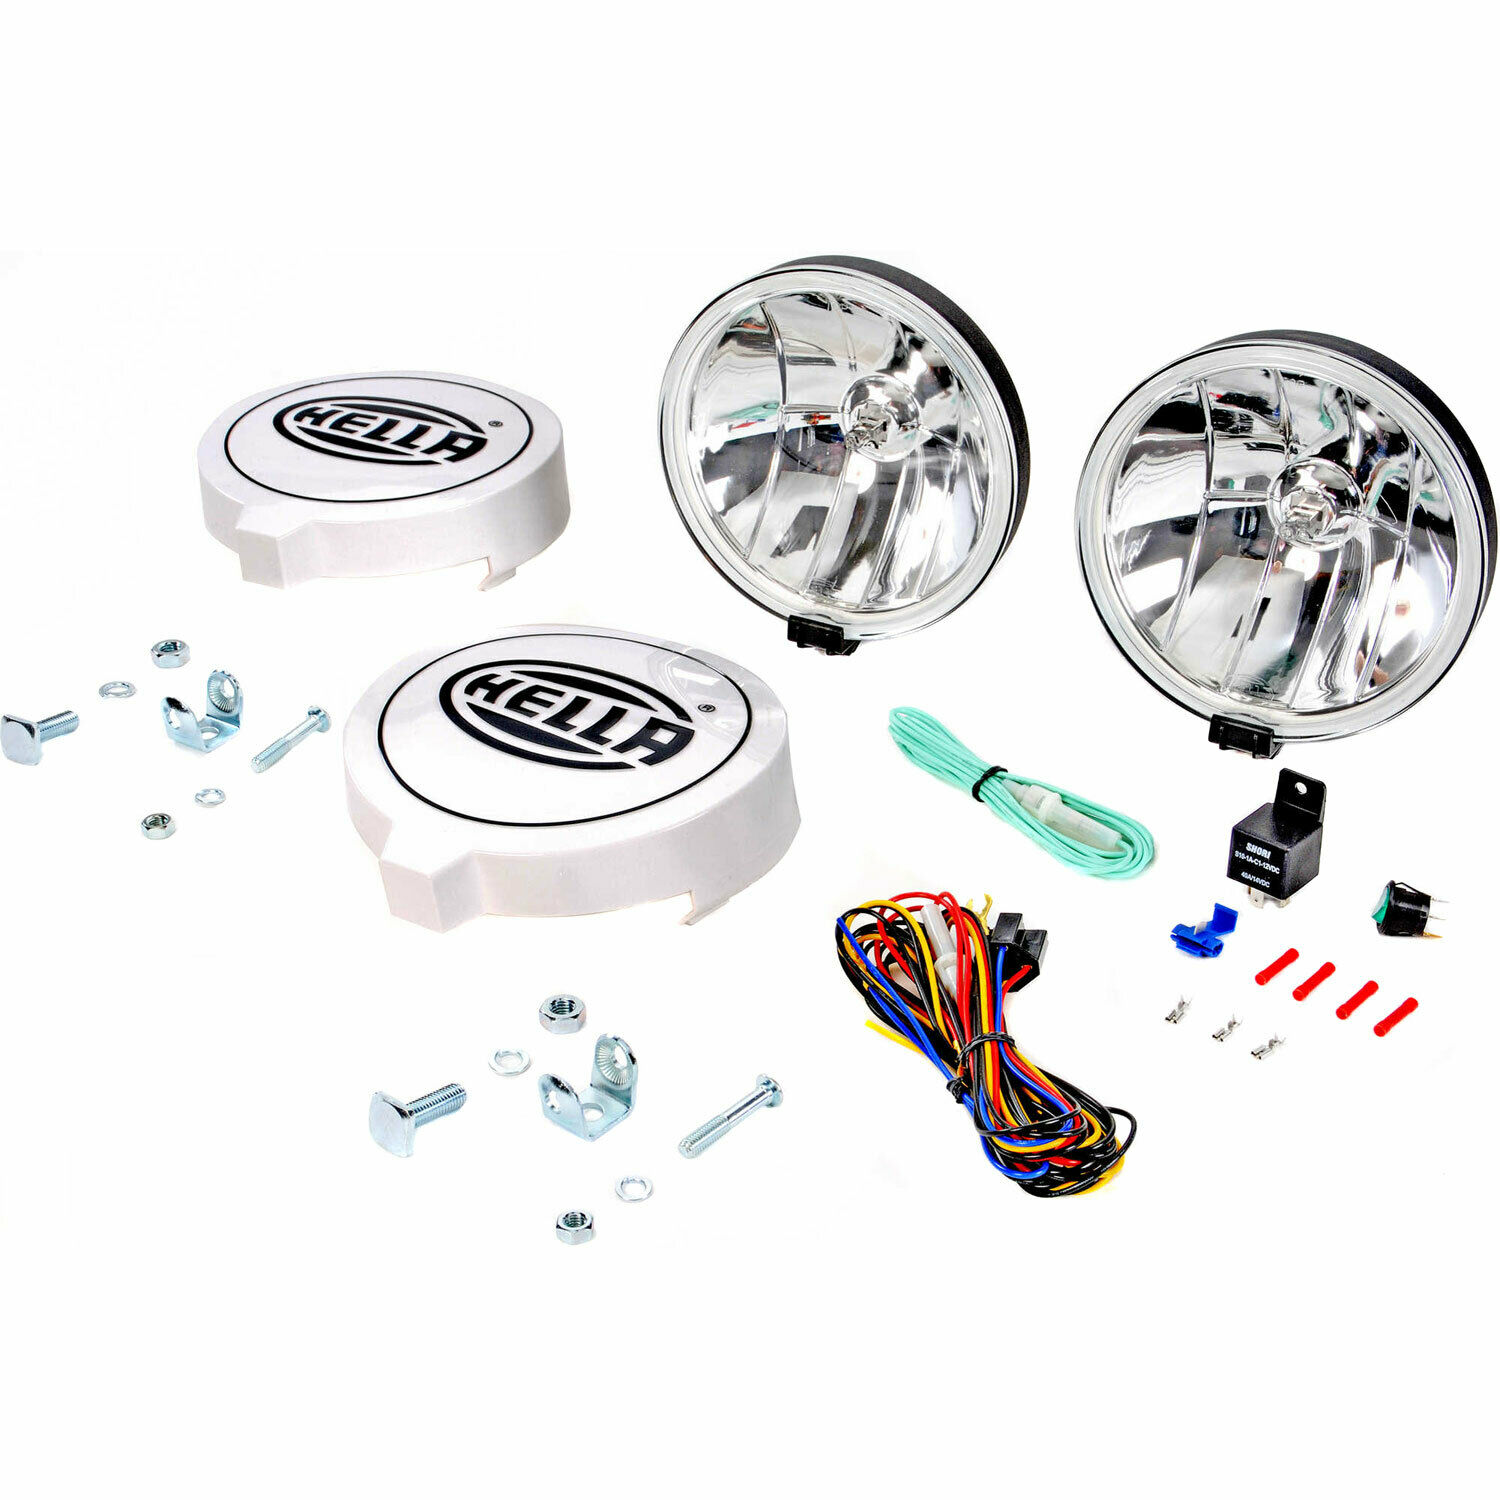 Hella 010032801 700ff Driving Light Kit 6714 Picclick Ibis Tek Bar Wiring Harness 1 Of 4only Available